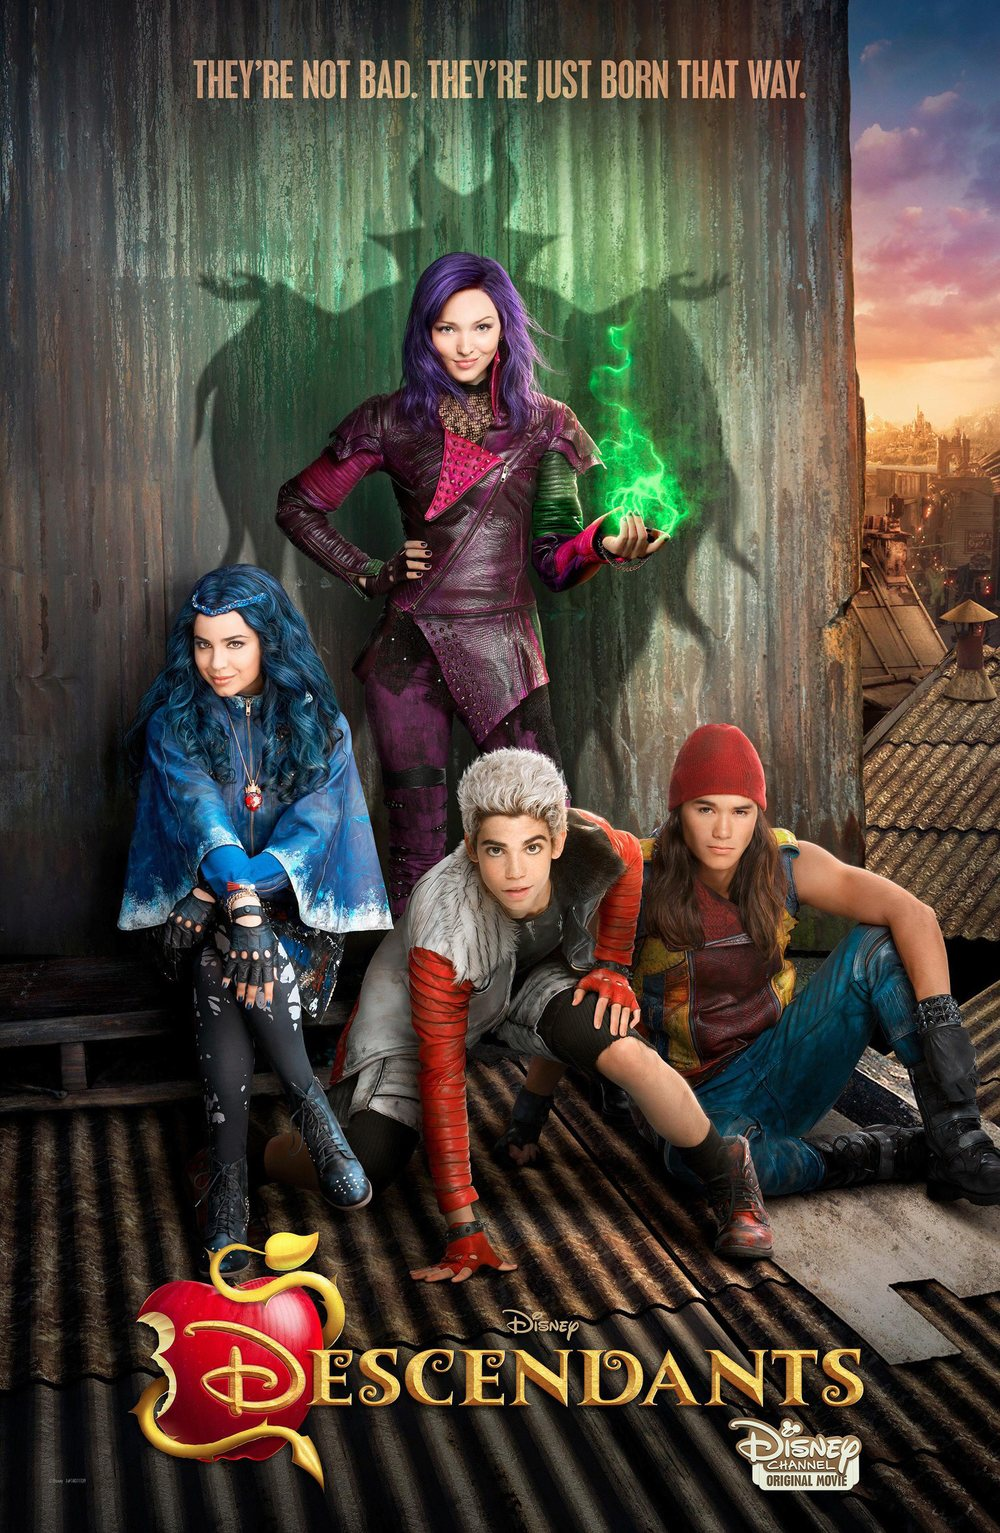 disney's descendants poster